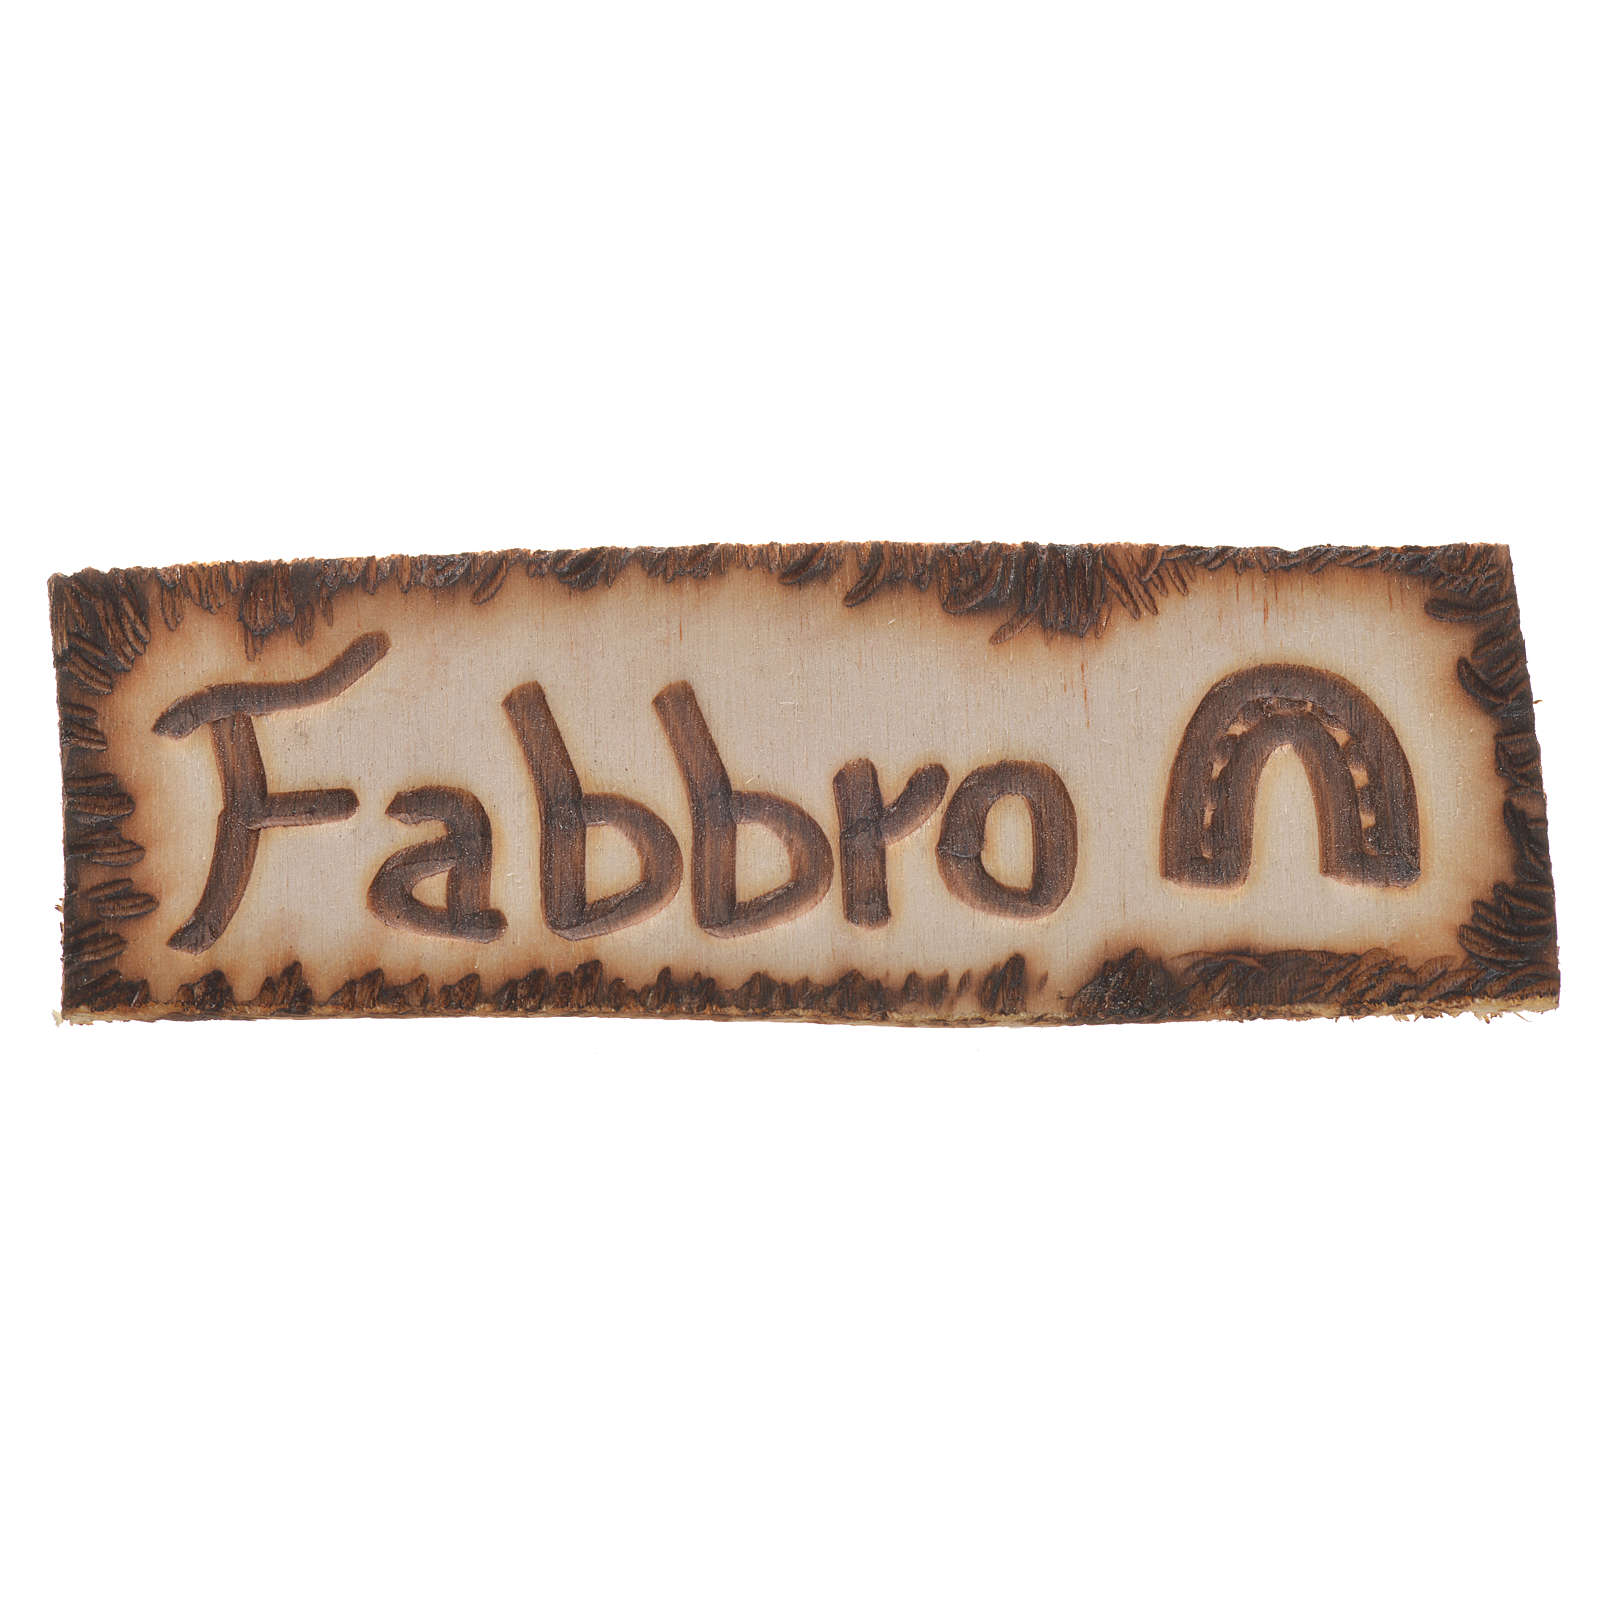 Smith wooden sign, 2.5x9cm for nativities 4